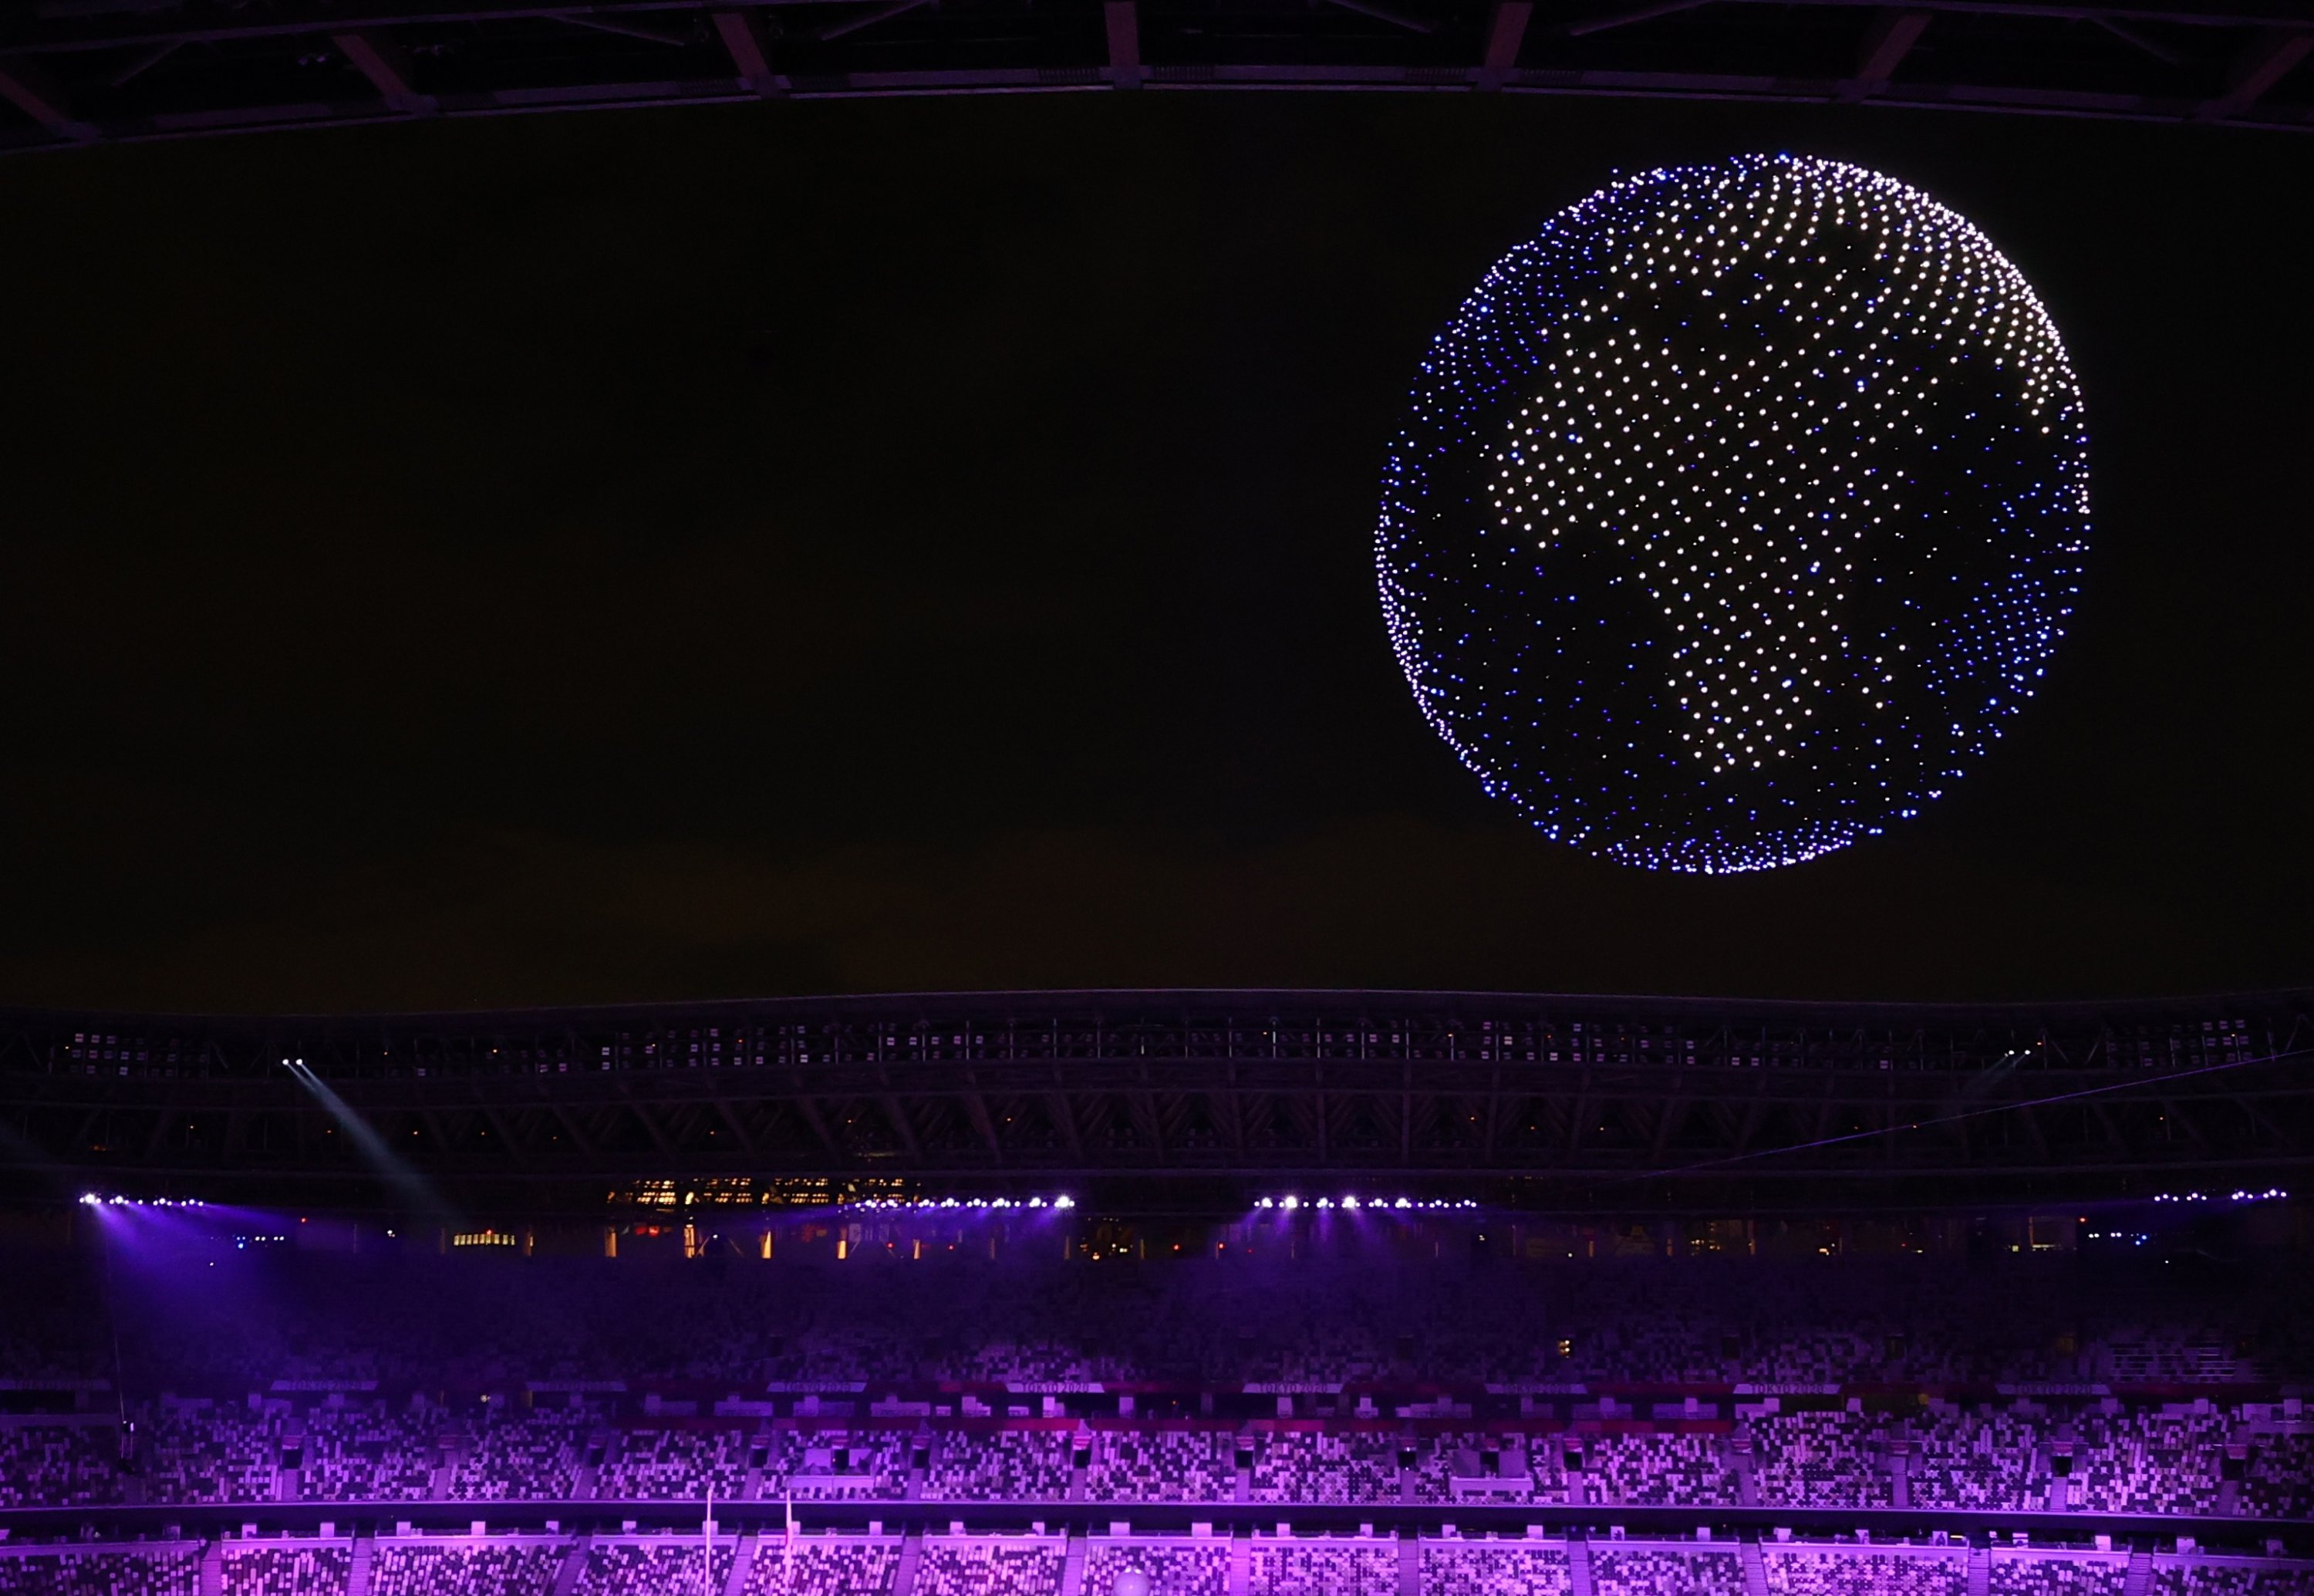 More than 1,000 drones form the shape of the Earth during the opening ceremony in the Olympic Stadium at the 2020 Summer Olympics, in Tokyo, Japan, July 23, 2021. (Reuters Photo)